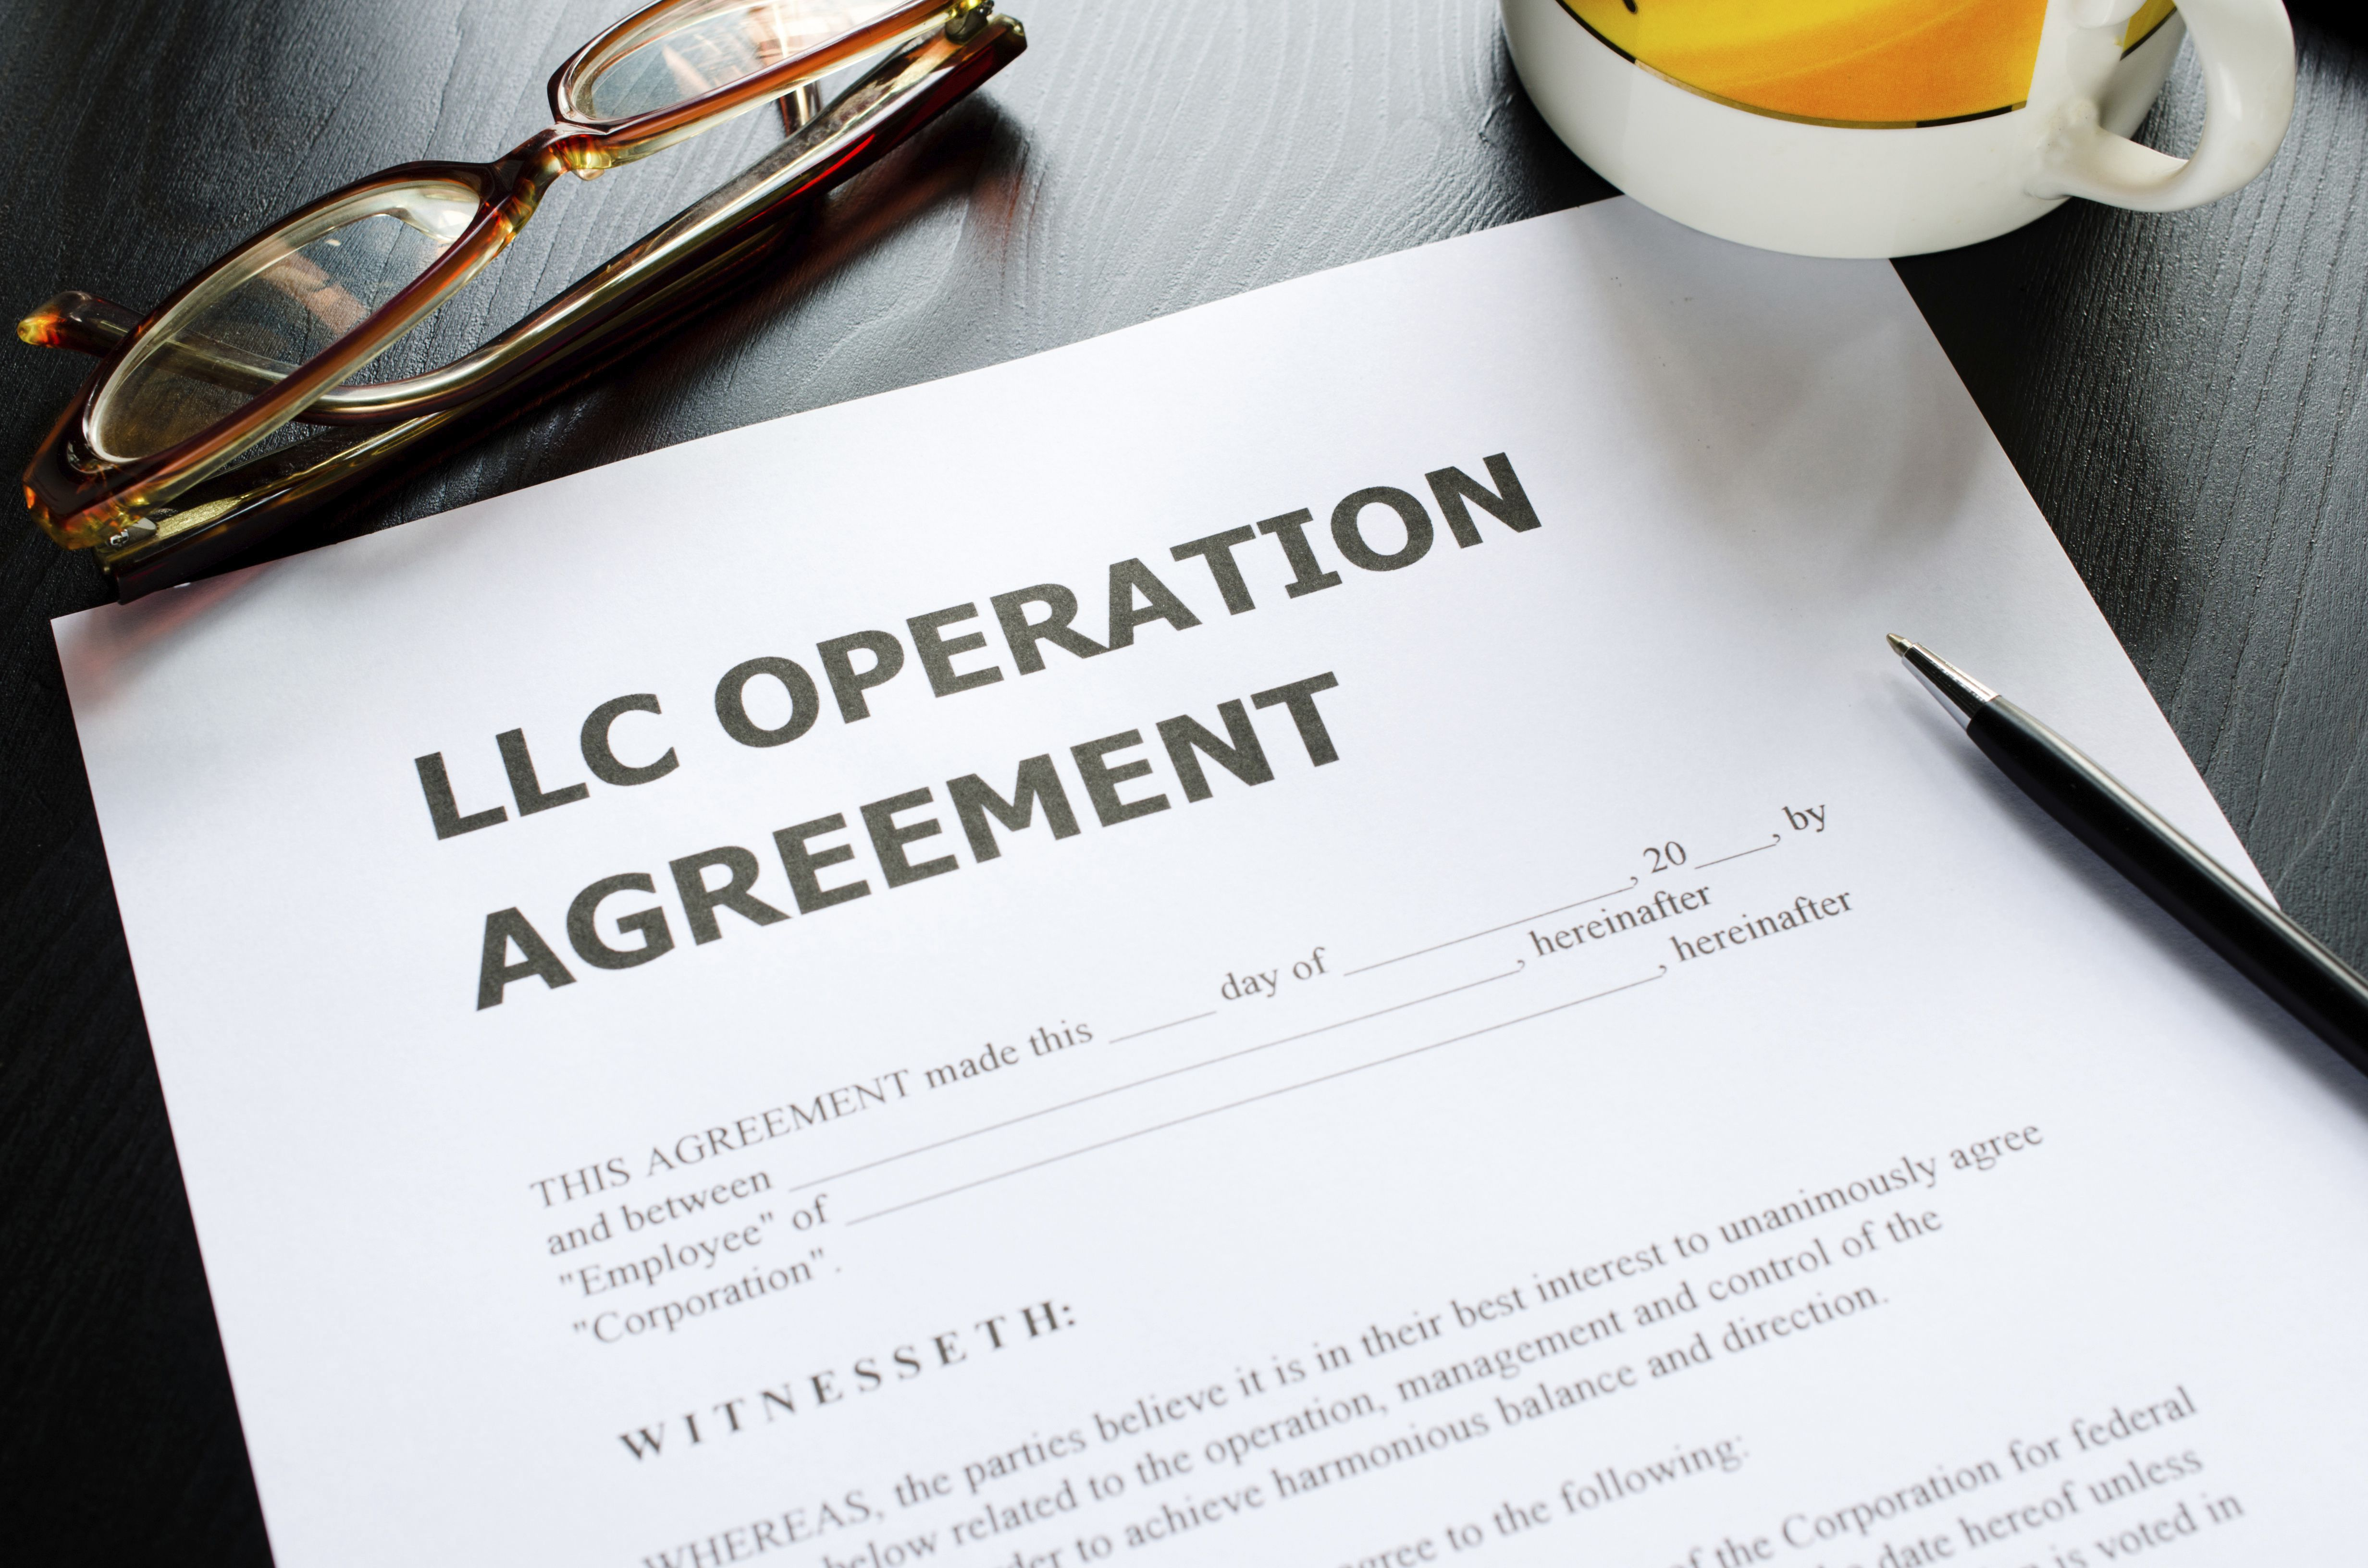 Using LLCs and Limited Liability Companies to hold your real estate investments